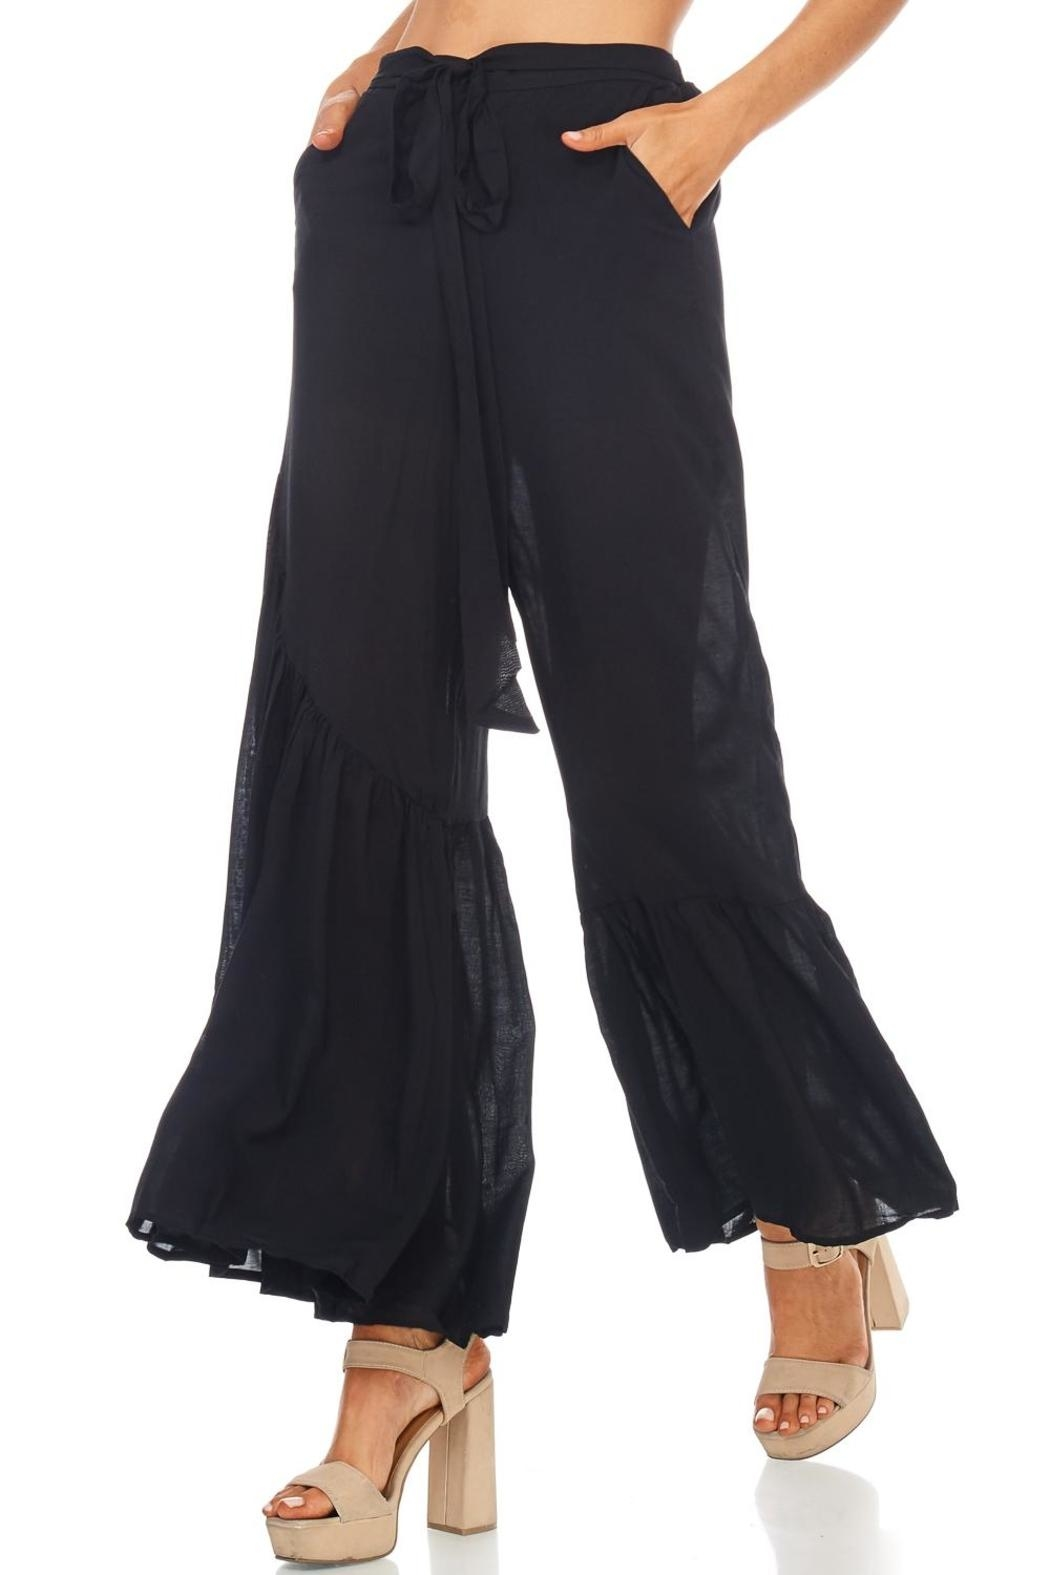 Favlux Wide Ruffle Leg Pants - Back Cropped Image